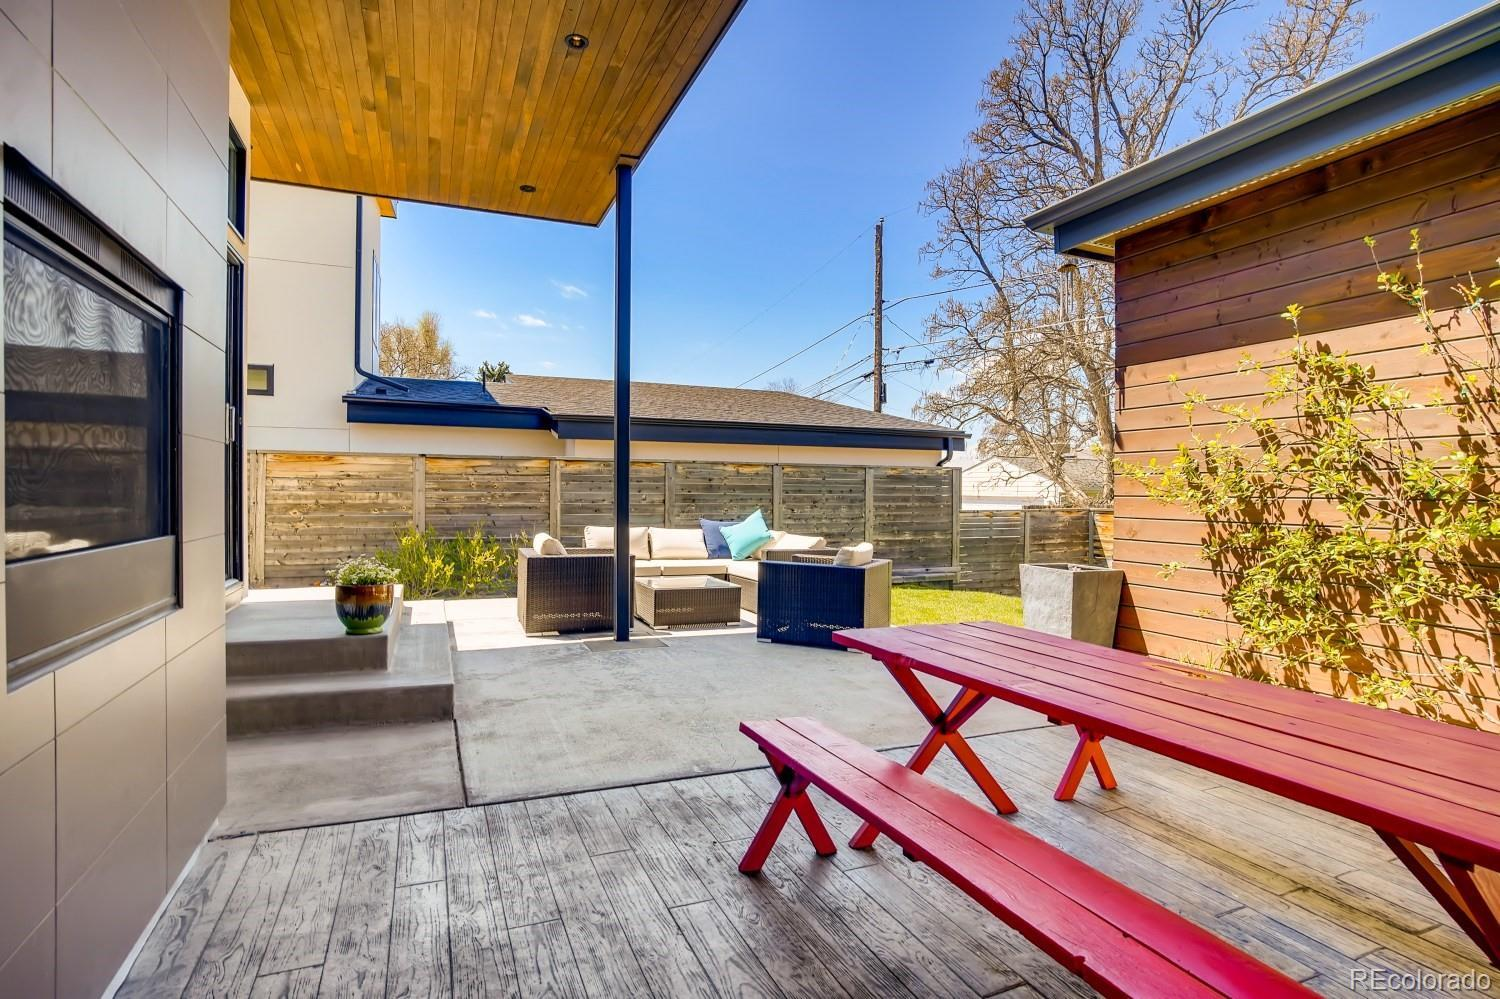 SOLD: 1141 S Cook Street photo